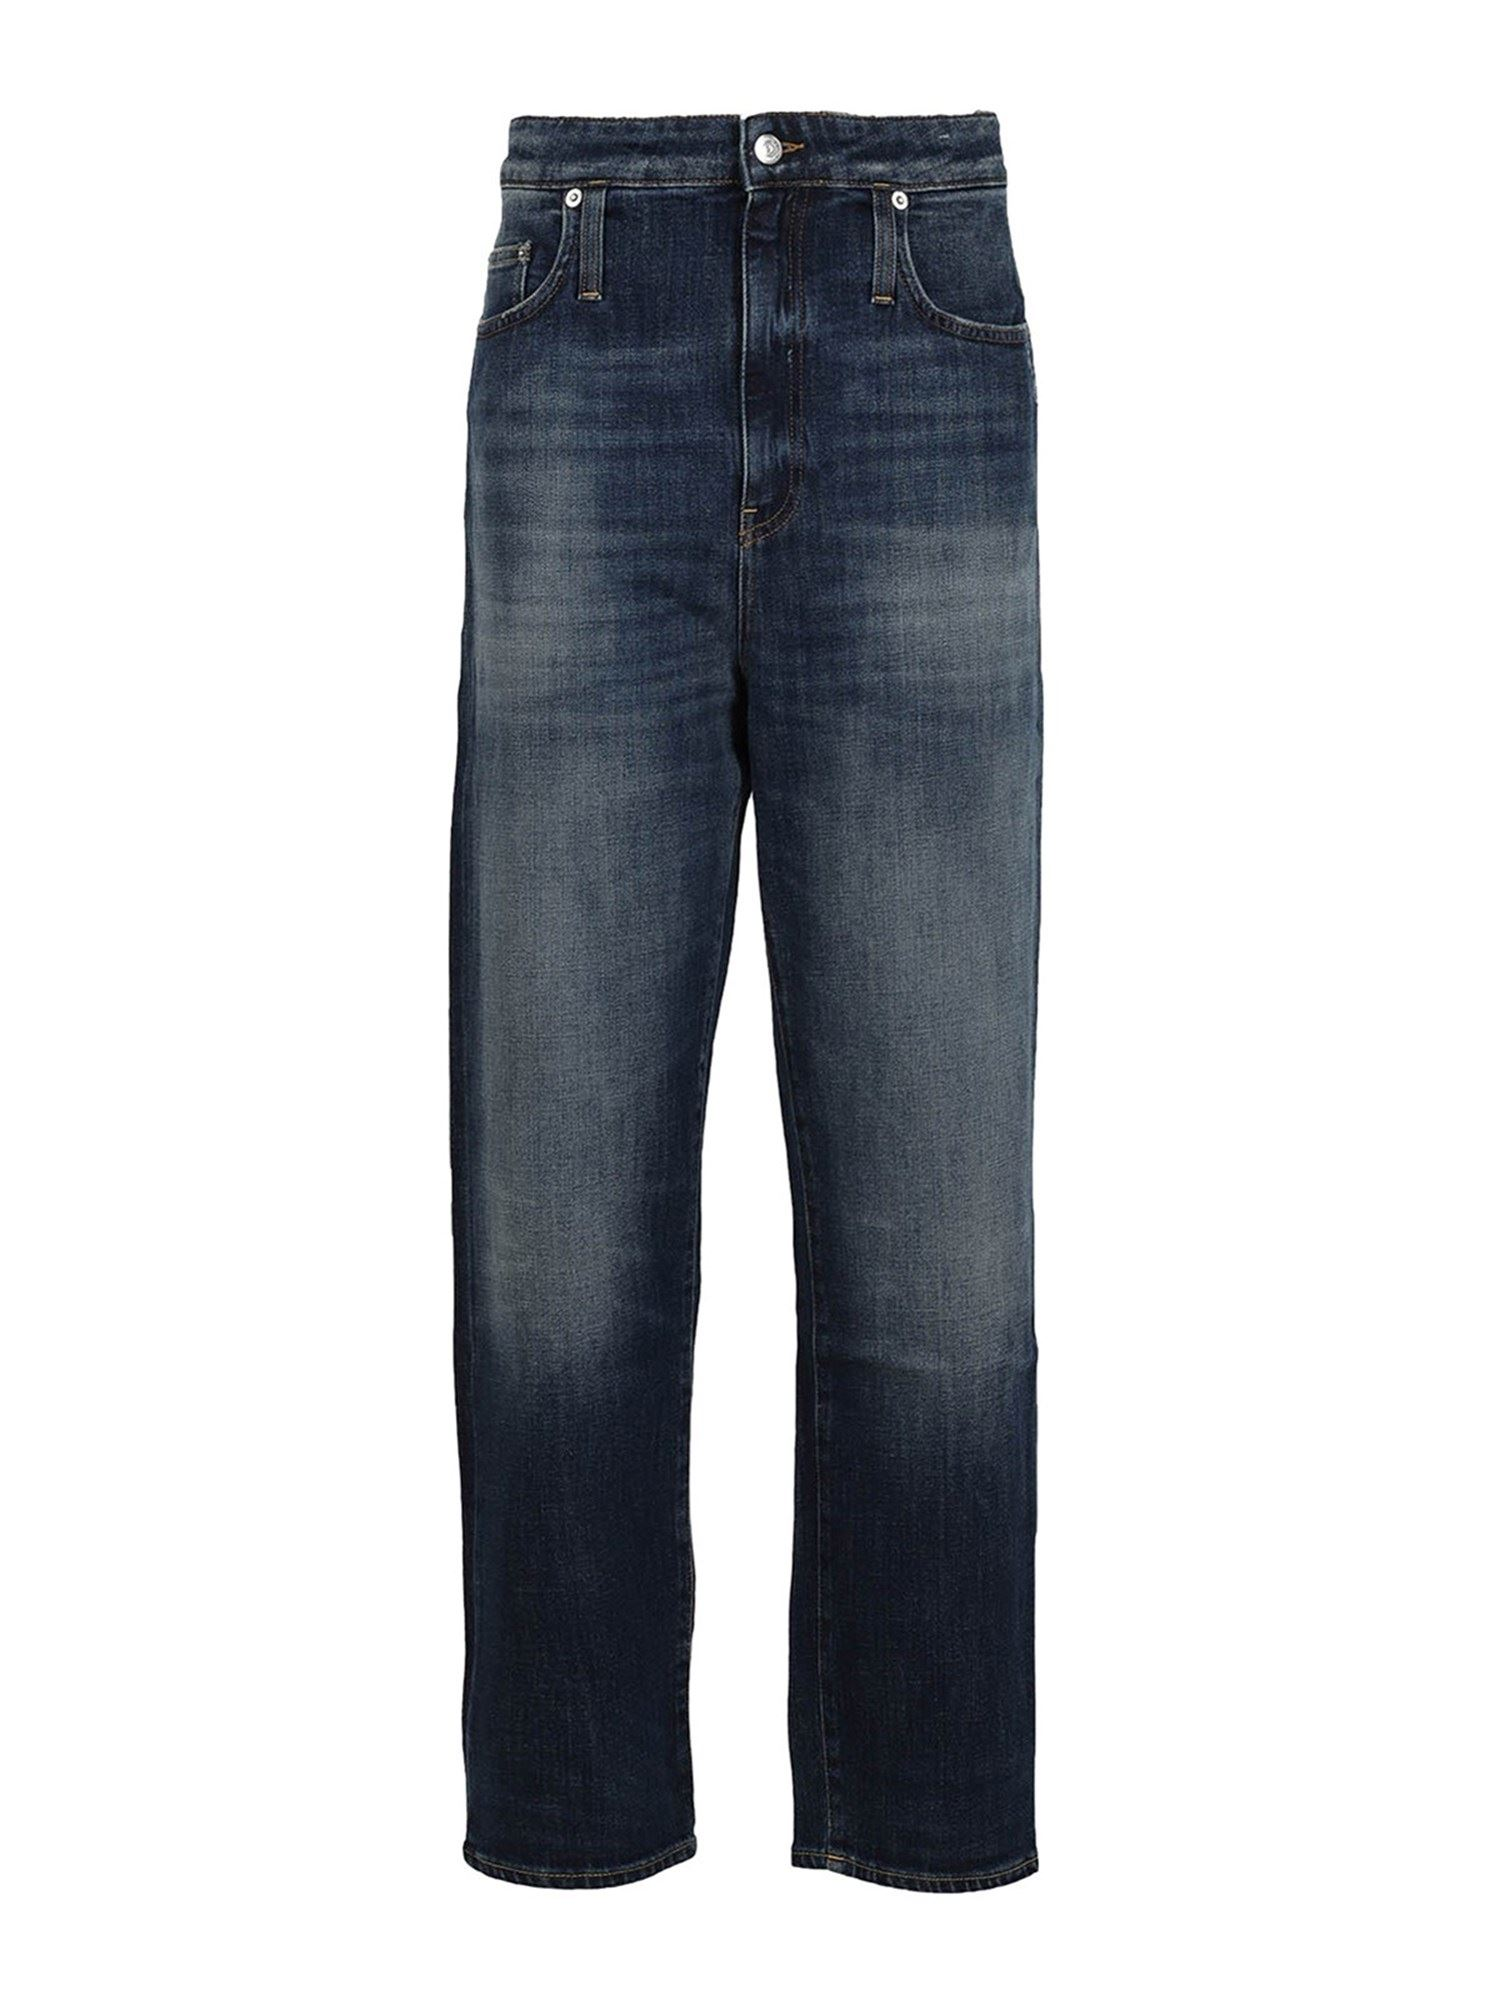 Department 5 FADED STRAIGHT LEG JEANS IN BLUE